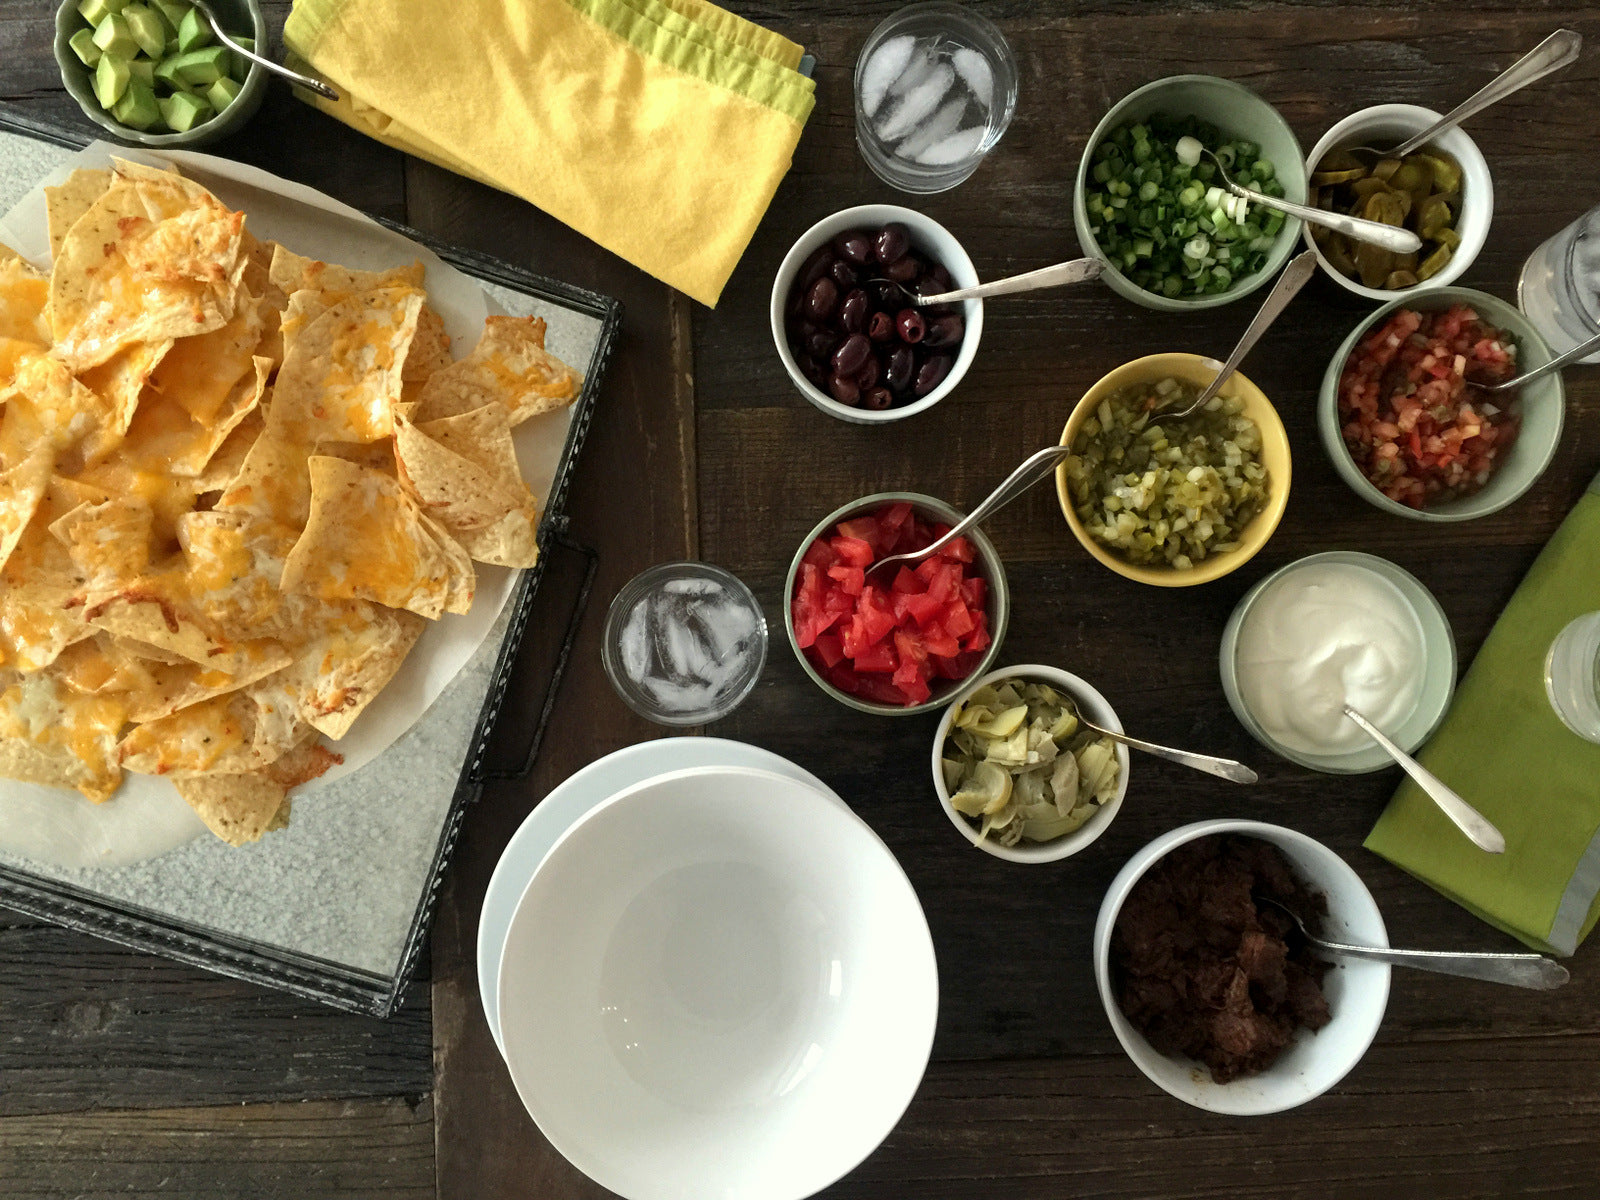 March Madness Party Ideas & Nacho Bar